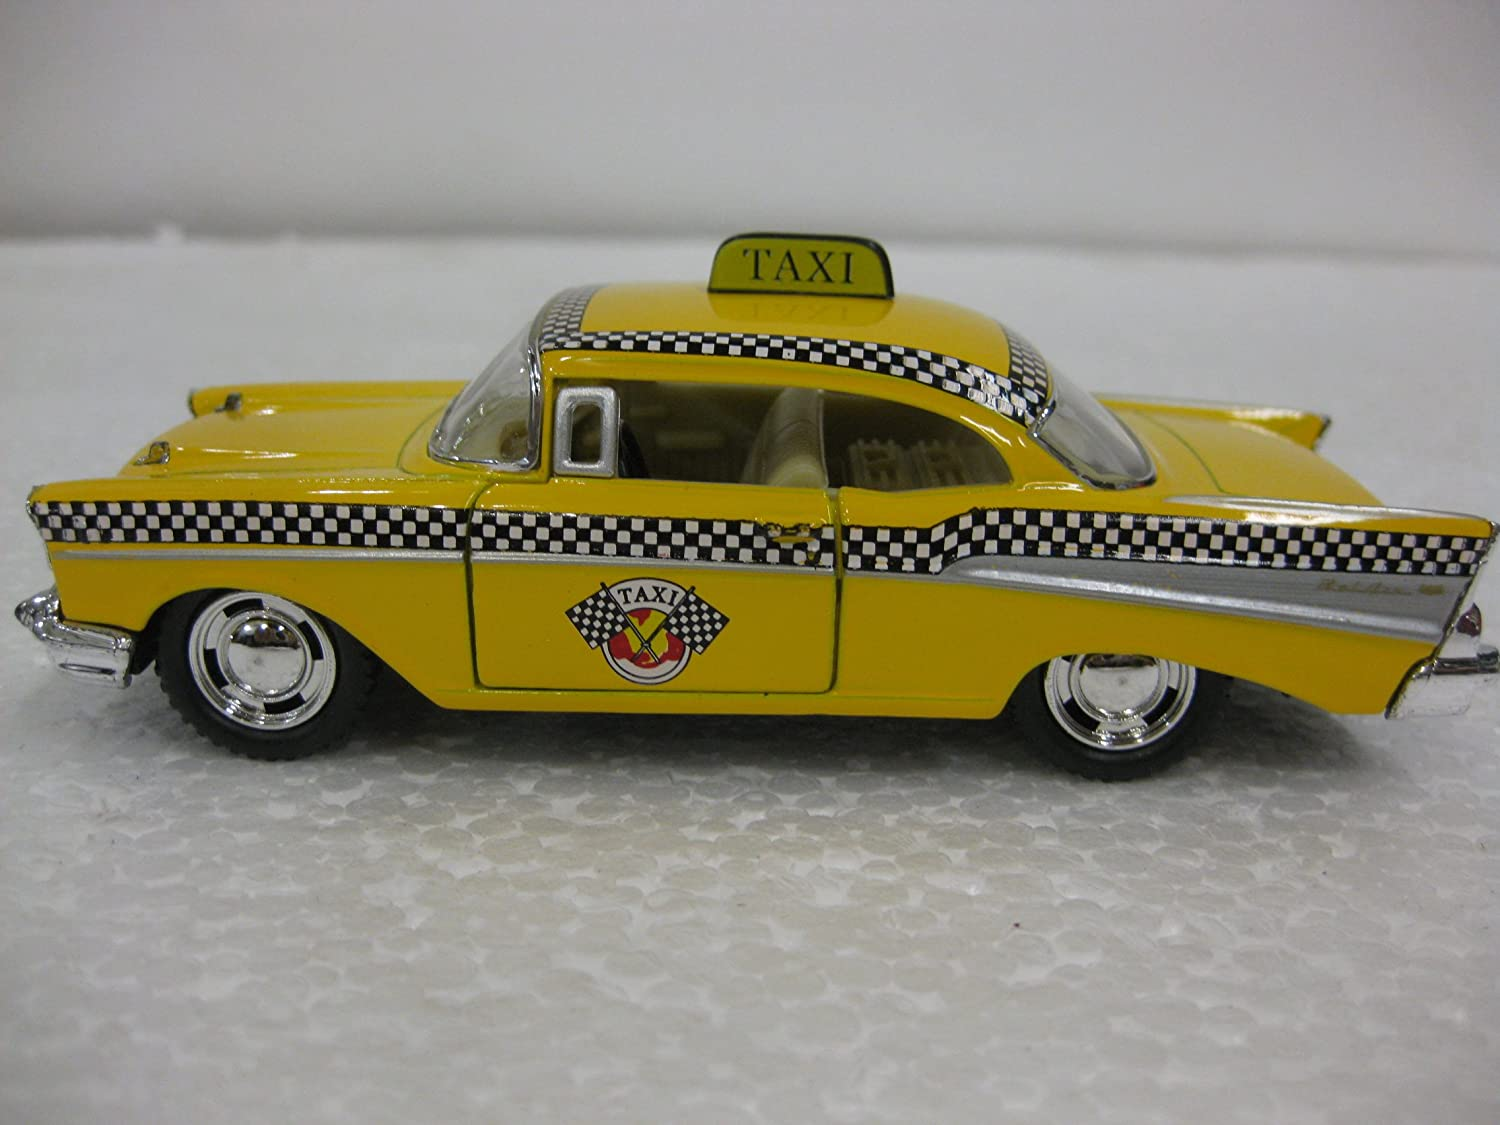 Diecast 1957 Chevrolet Bel Air Taxi 1 40 Scale with Opening Doors And Pull Back Action Manufactured By Kinsmart